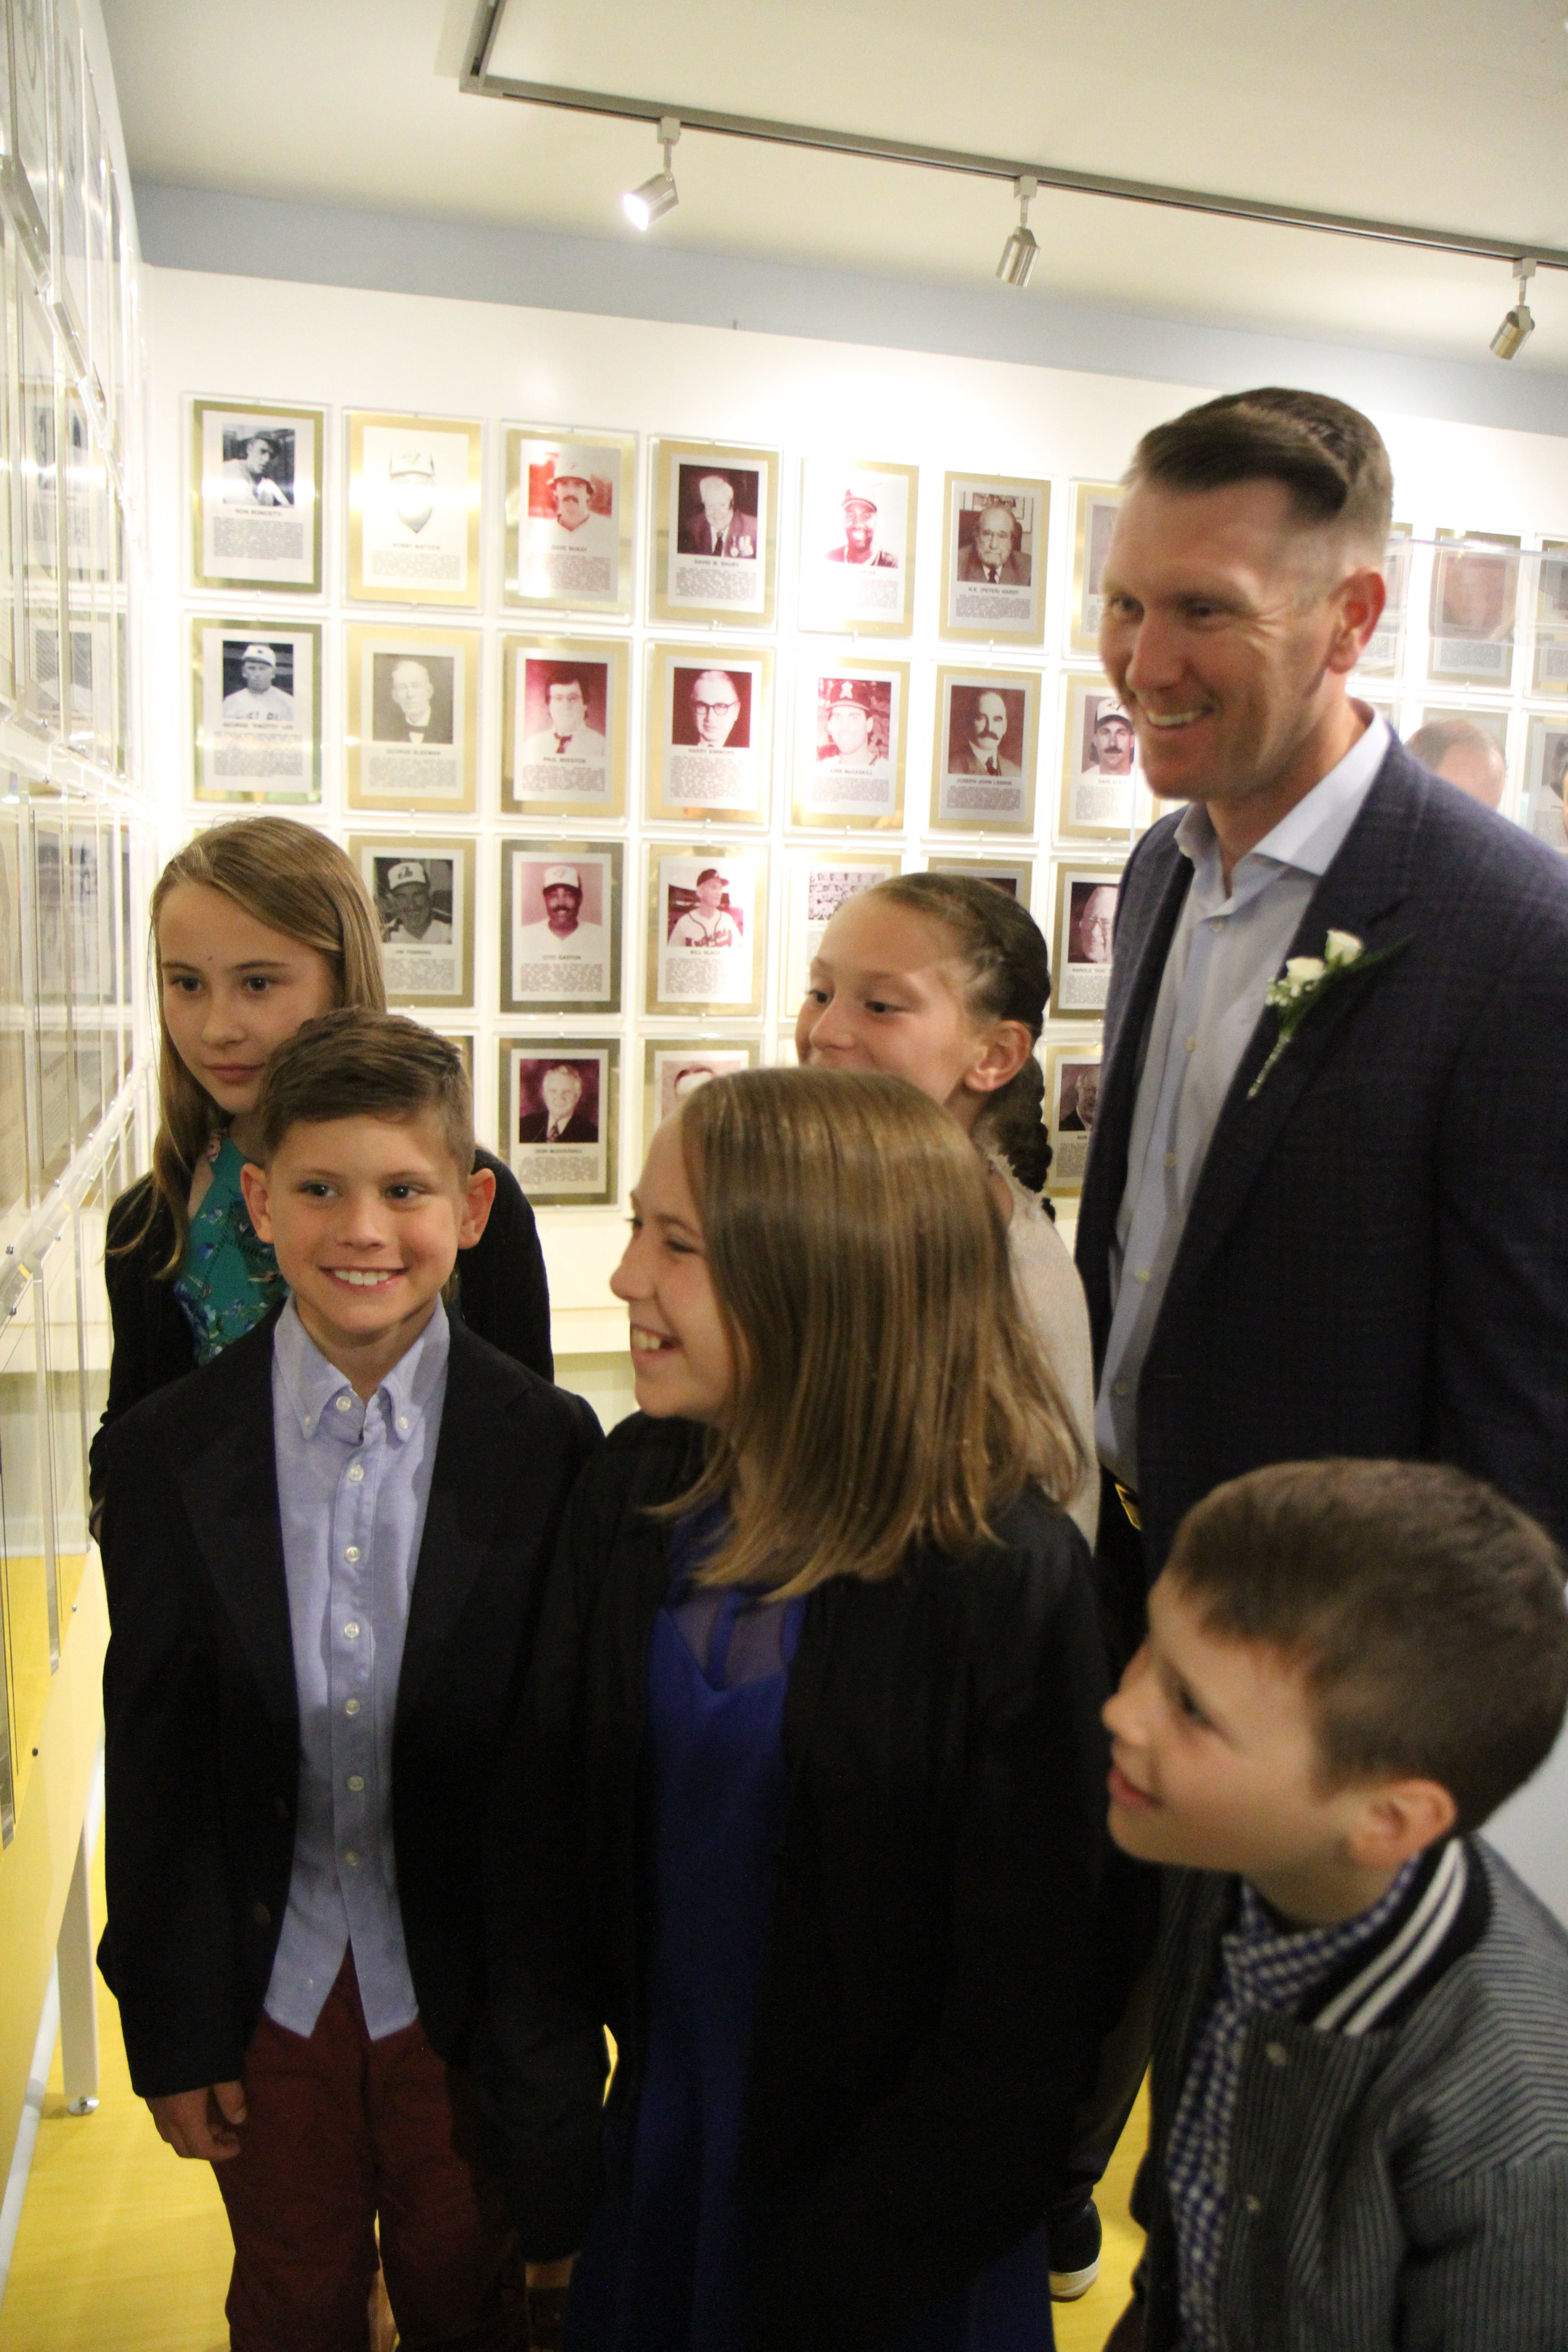 One of the most heart-warming moments of the Canadian Baseball Hall of Fame's induction day last weekend was watching 2019 inductee Jason Bay (Trail, B.C.) interact with his three children and nephews and nieces during the tour that Scott Crawford gave them of the museum. Bay's kids clearly adore him, and this photo snapped by talented Canadian Baseball Network writer J.P. Antonacci is one of my favourites from the weekend. Photo: J.P. Antonacci